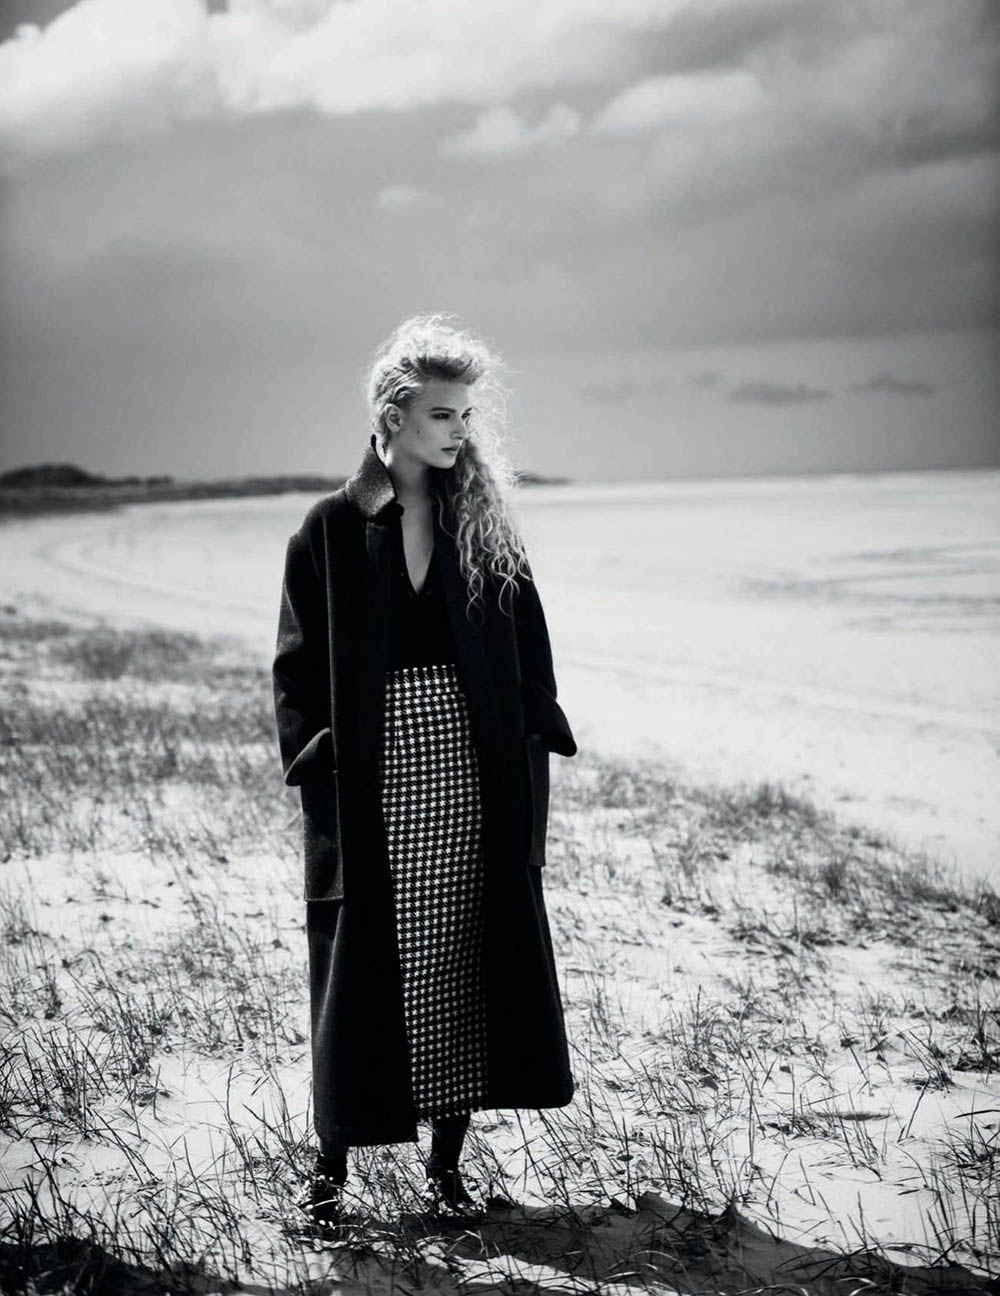 Frederikke Sofie by Boo George for Vogue Spain September 2019